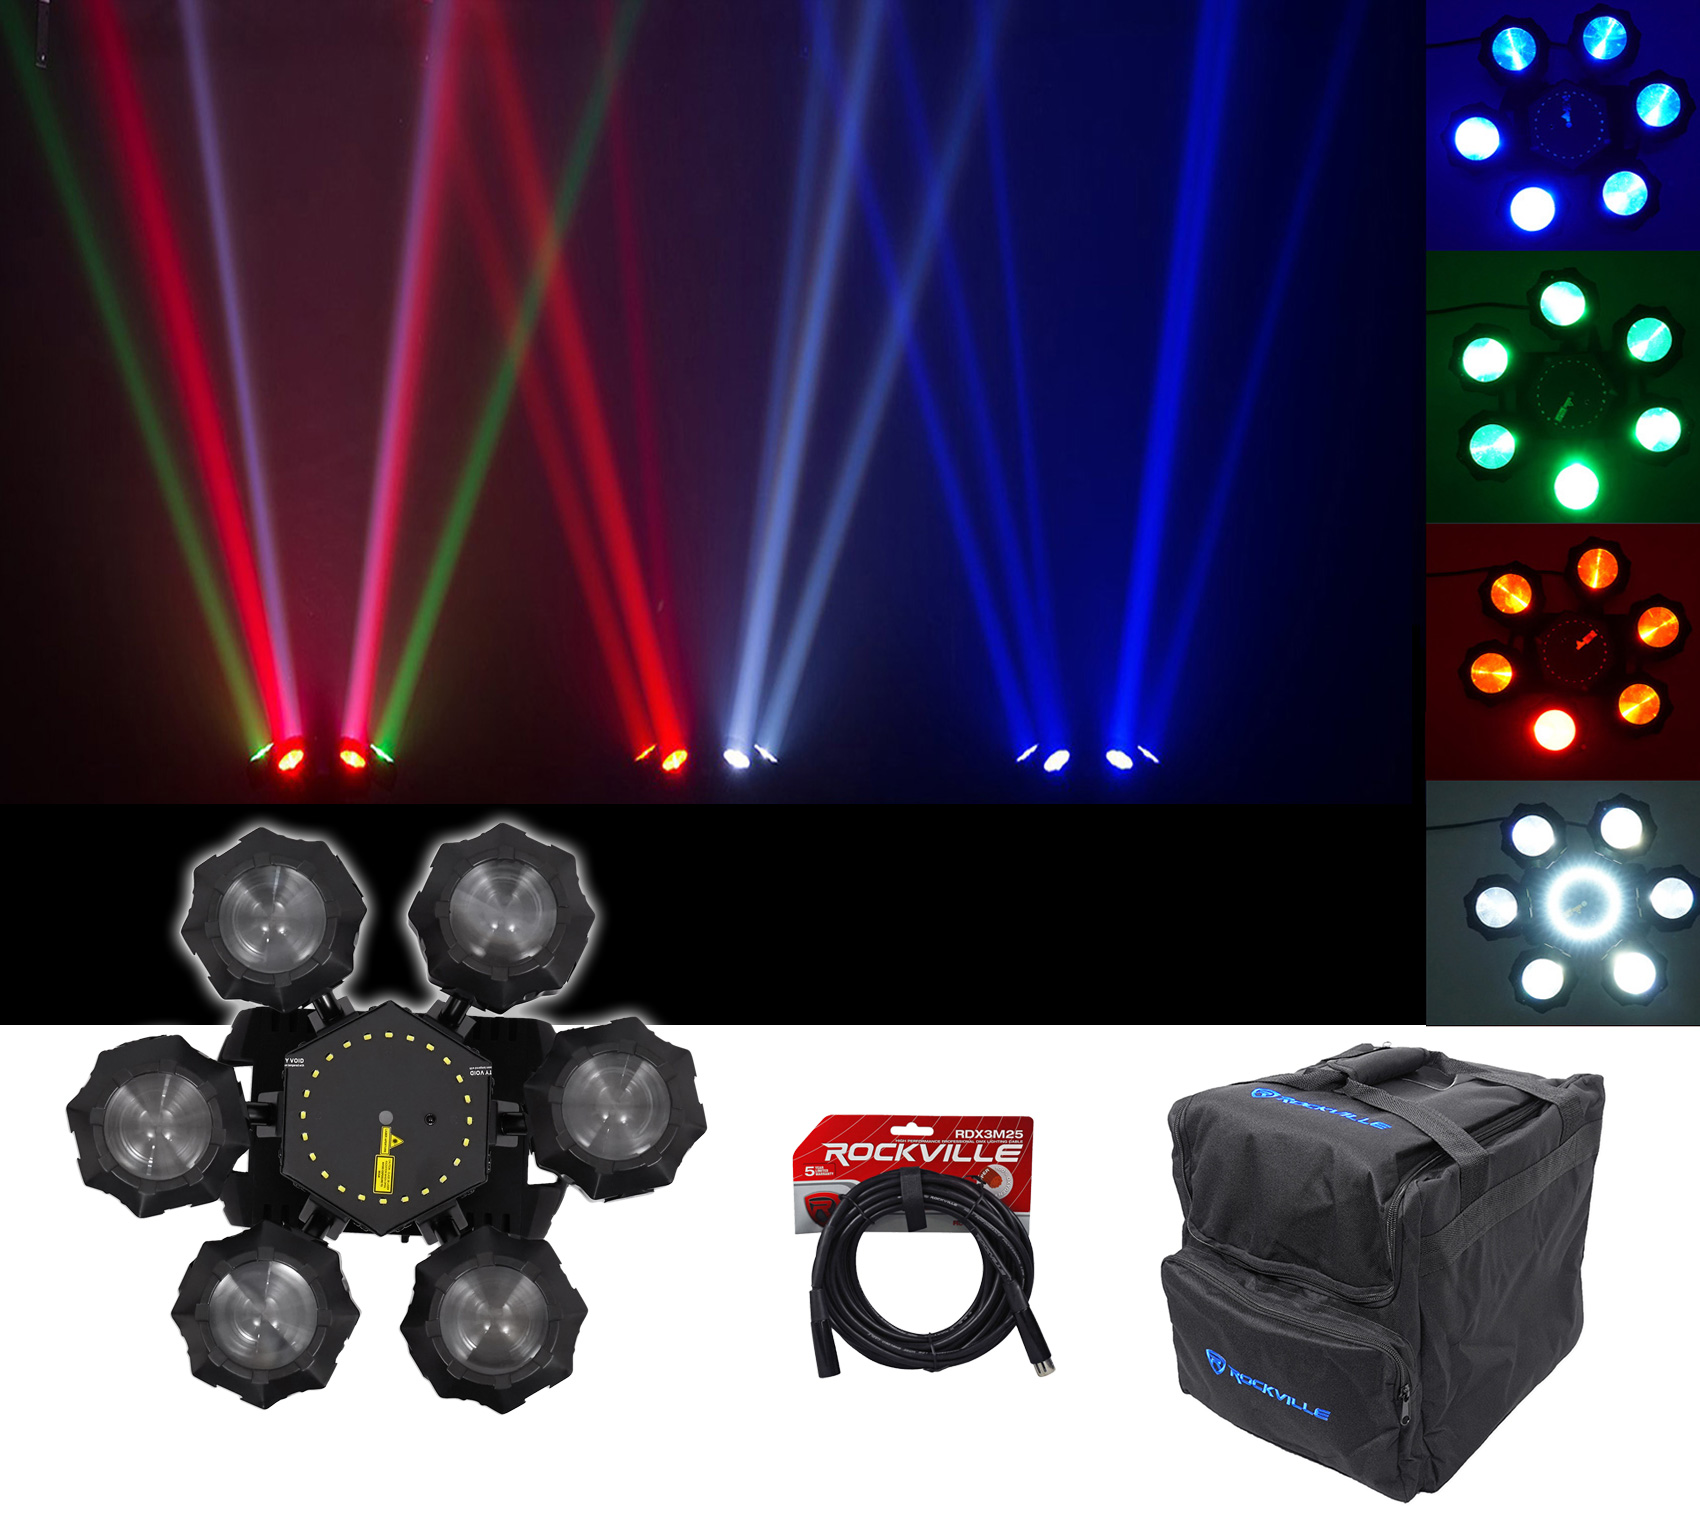 Chauvet DJ Helicopter Q6 DMX Rotating Dance Floor Effect Light+Carry Bag+Cable by CHAUVET